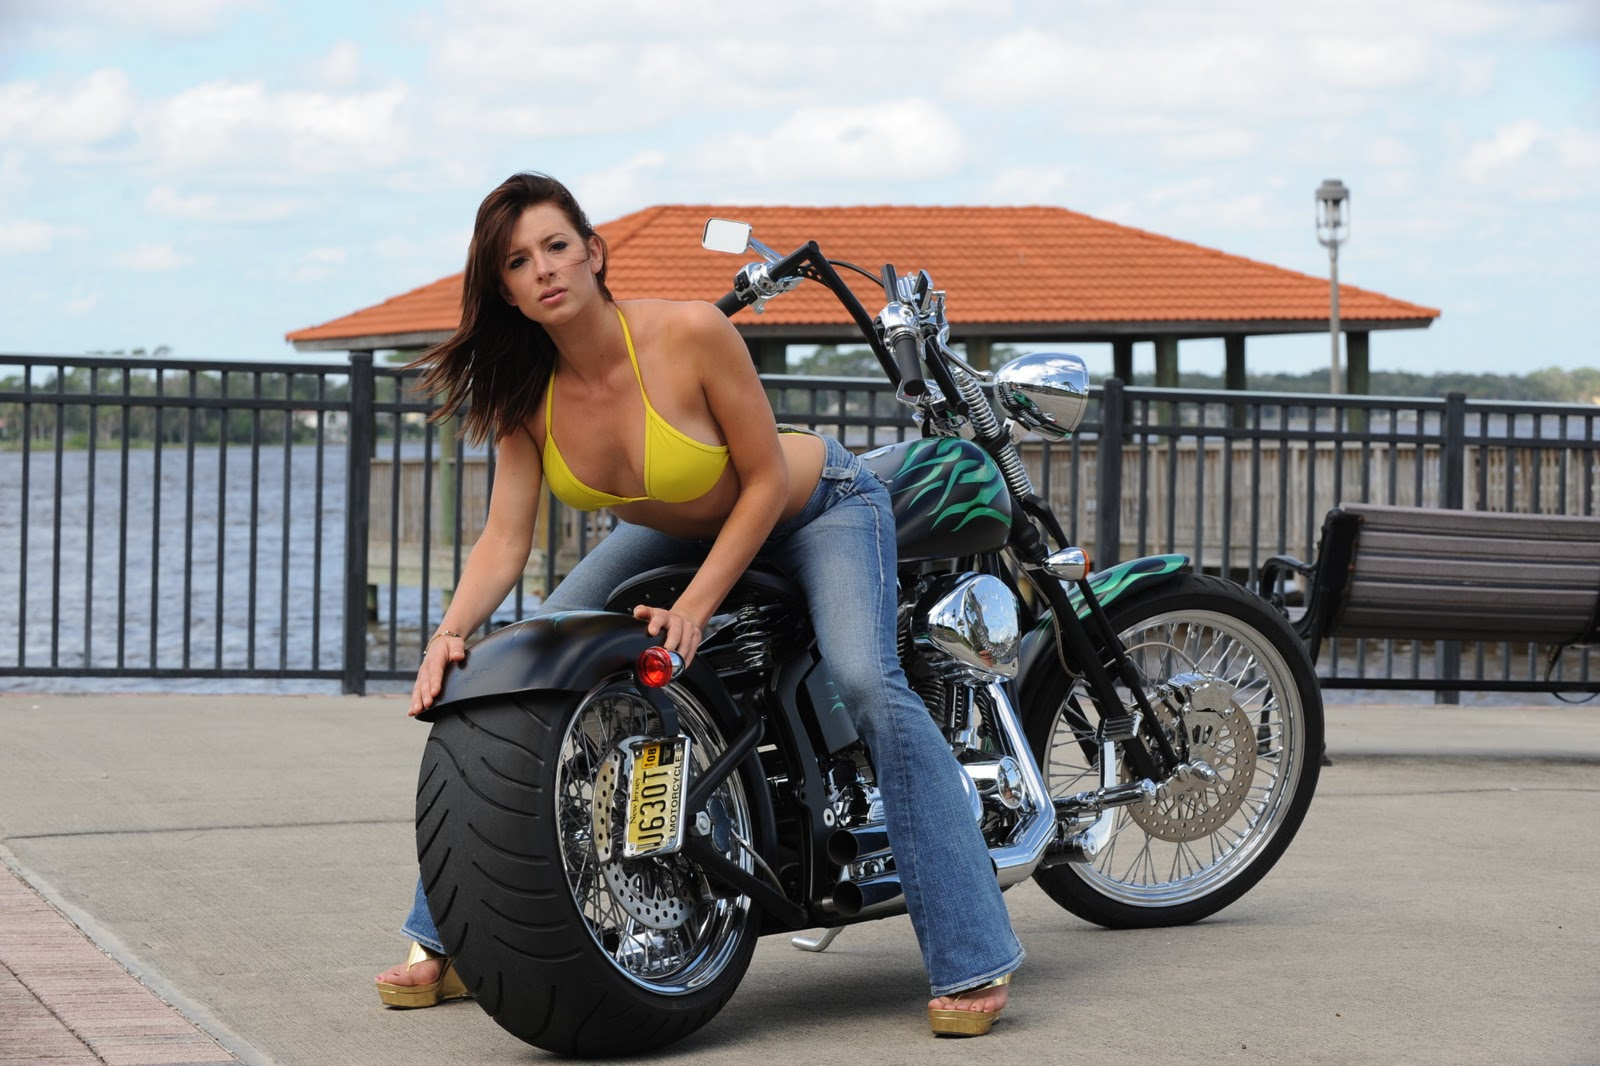 Bikes with hot girls, perfect teen sex pics